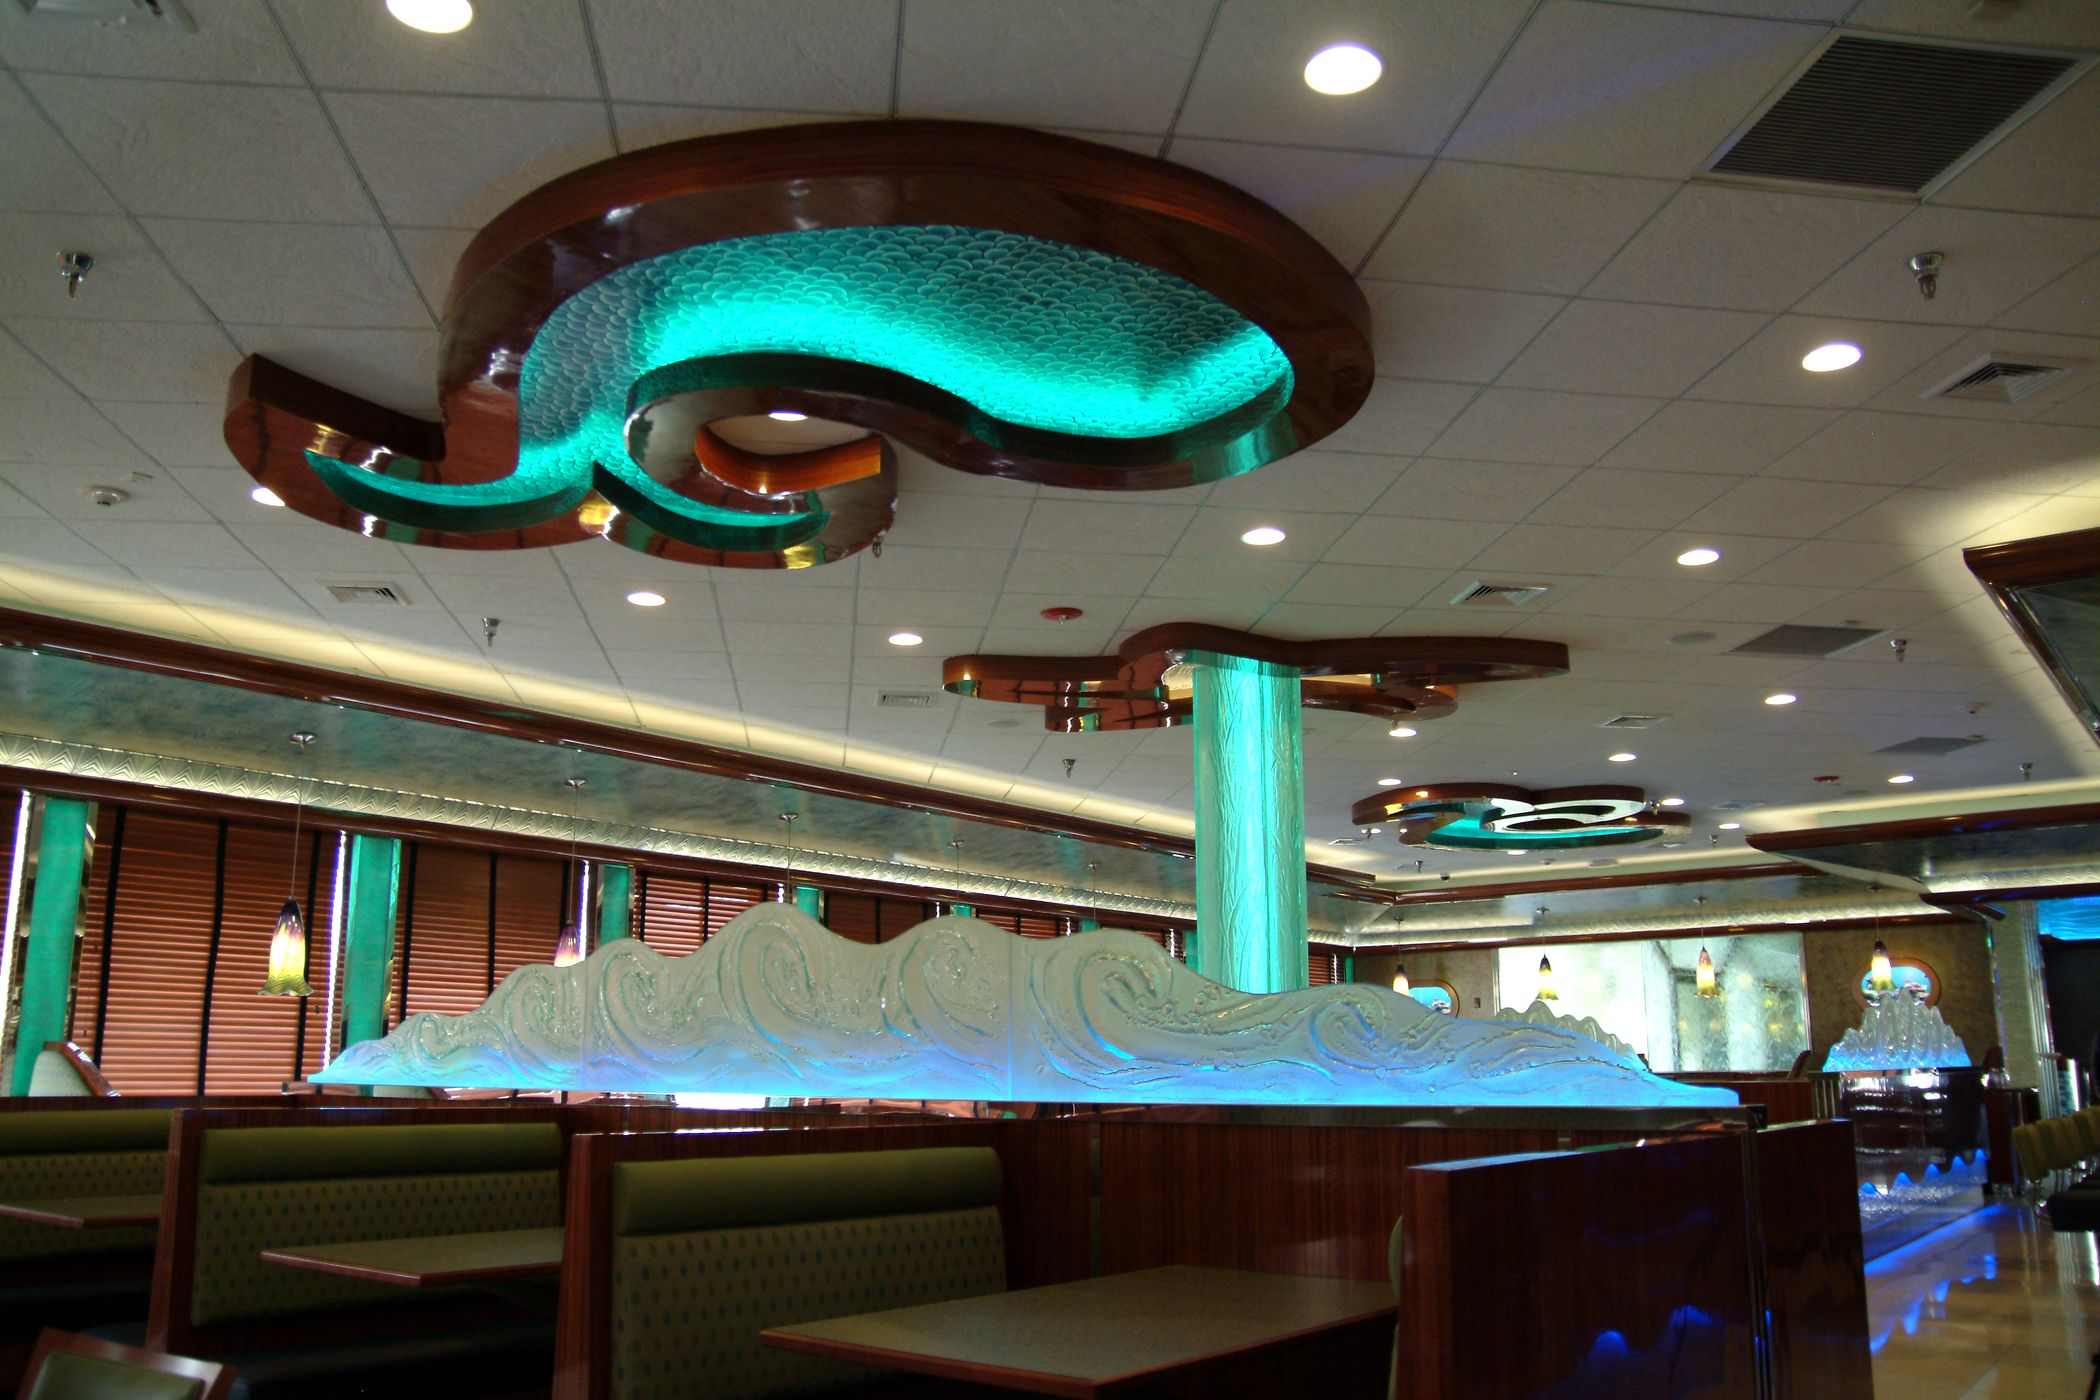 The Lit Sea Creature Shaped Ceiling Coves And Wave Glass Atop Half Walls Contribute To The Oceanic Experience Of The Ea Wave Glass Commercial Design Half Walls